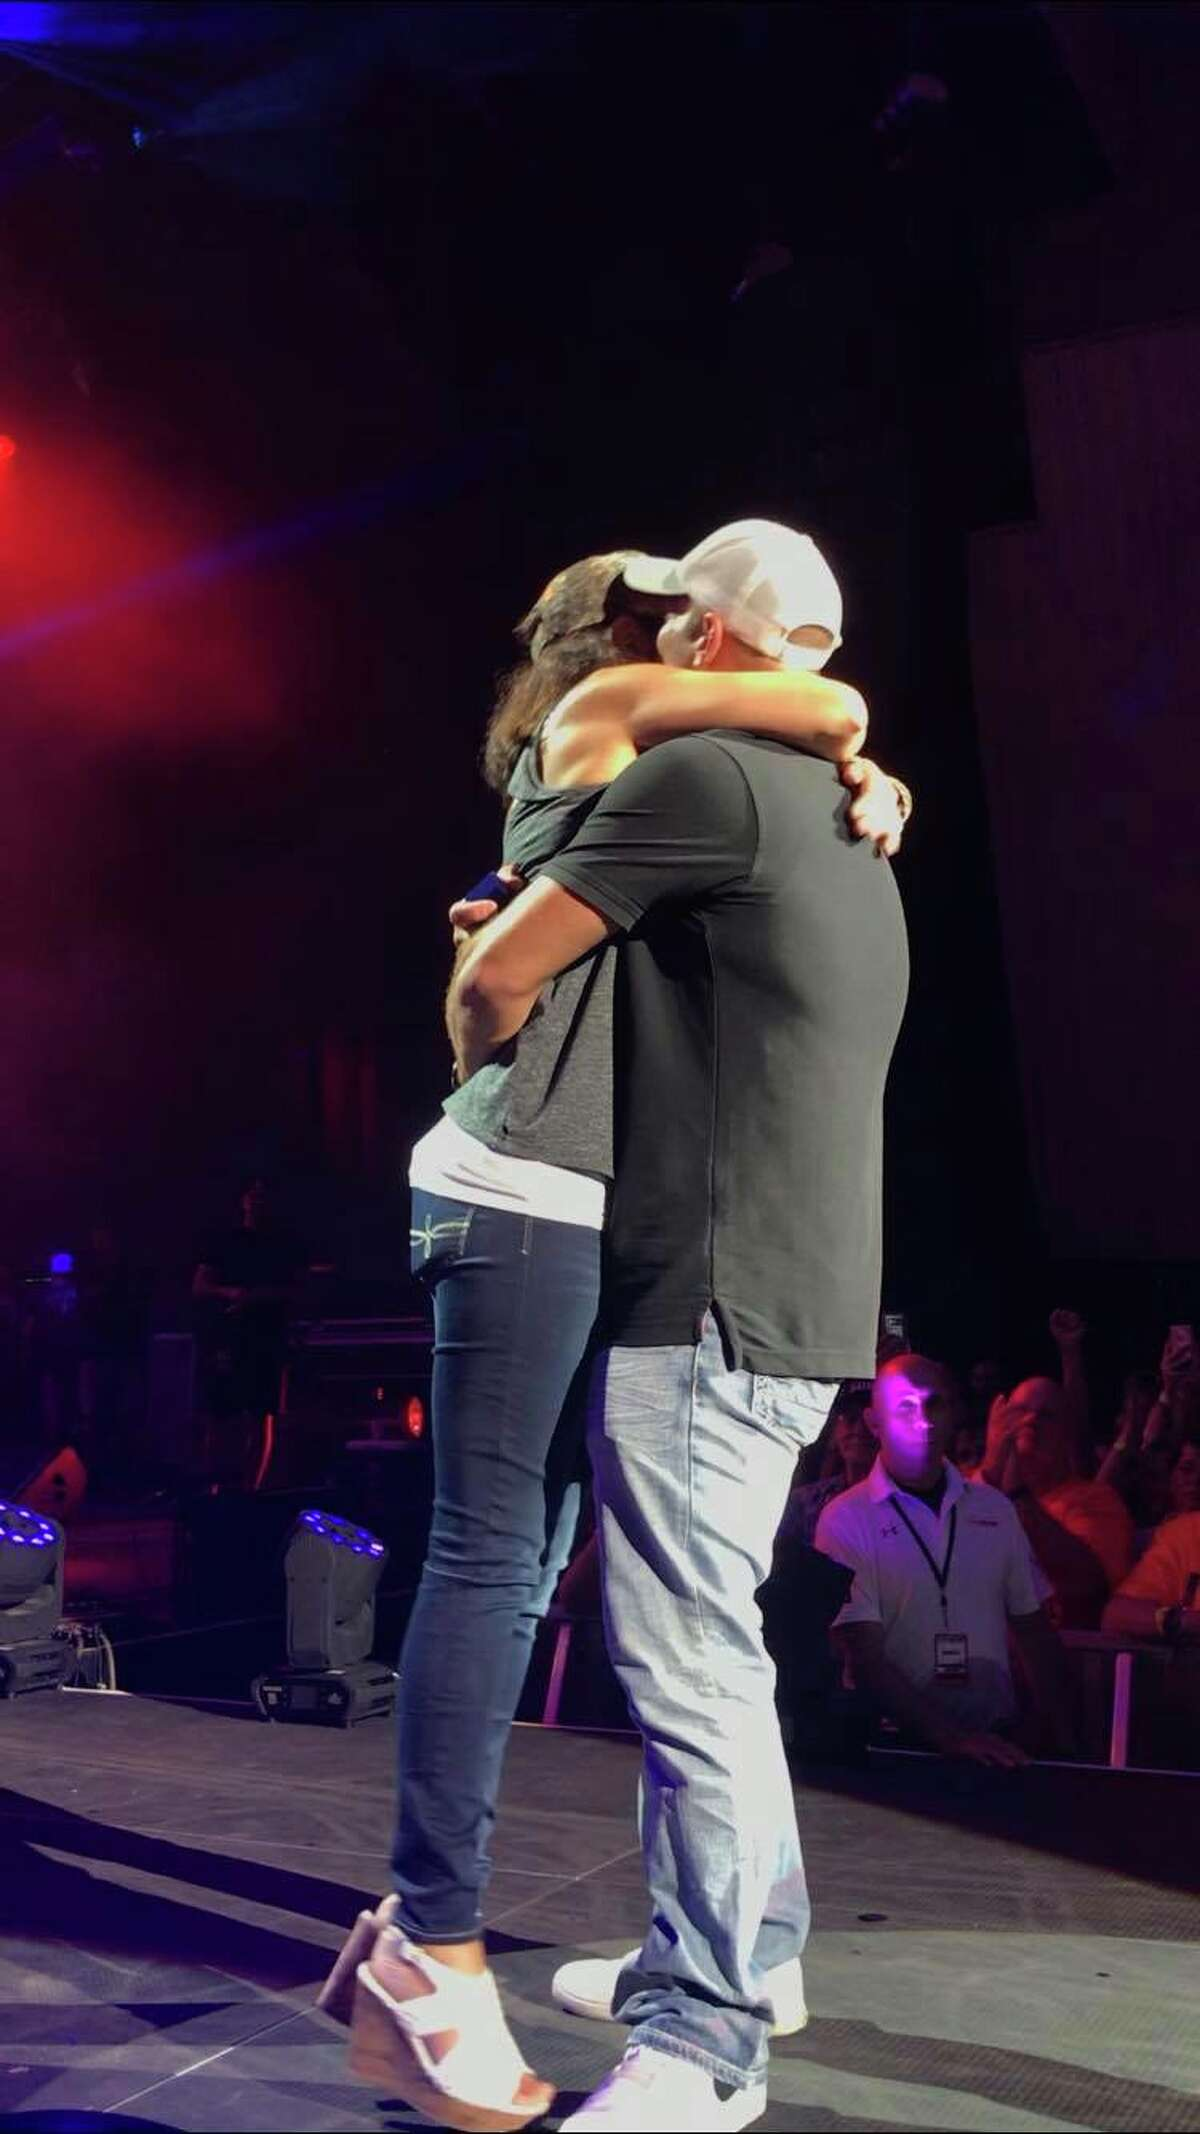 Erin Adams and Will Brickwedel, both of Clifton Park, got engaged at the Luke Bryan concert at SPAC this past Sunday.